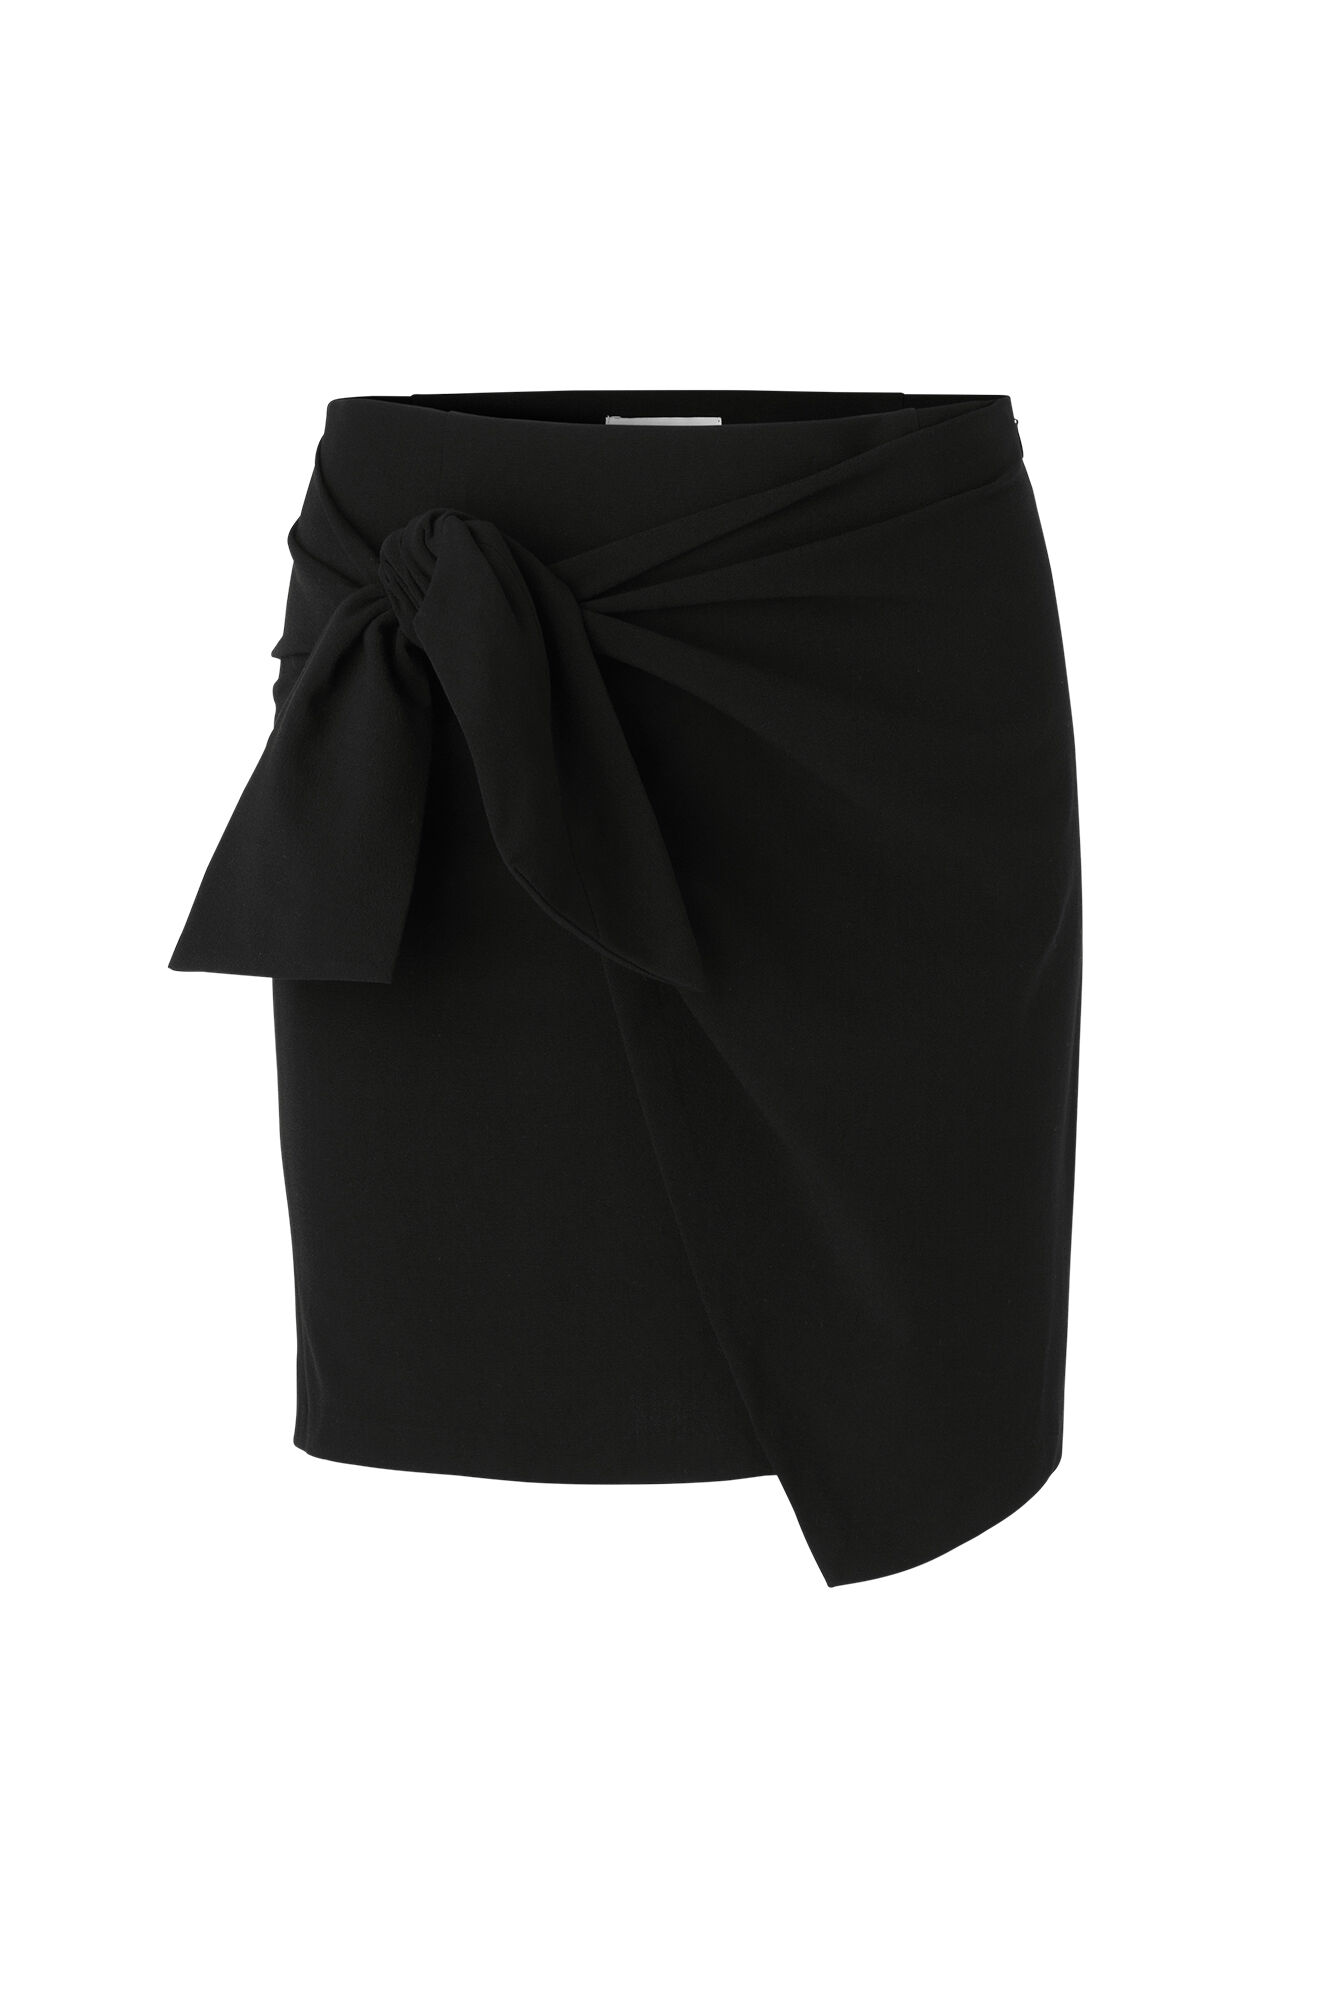 ENAMBER SKIRT 6390, BLACK